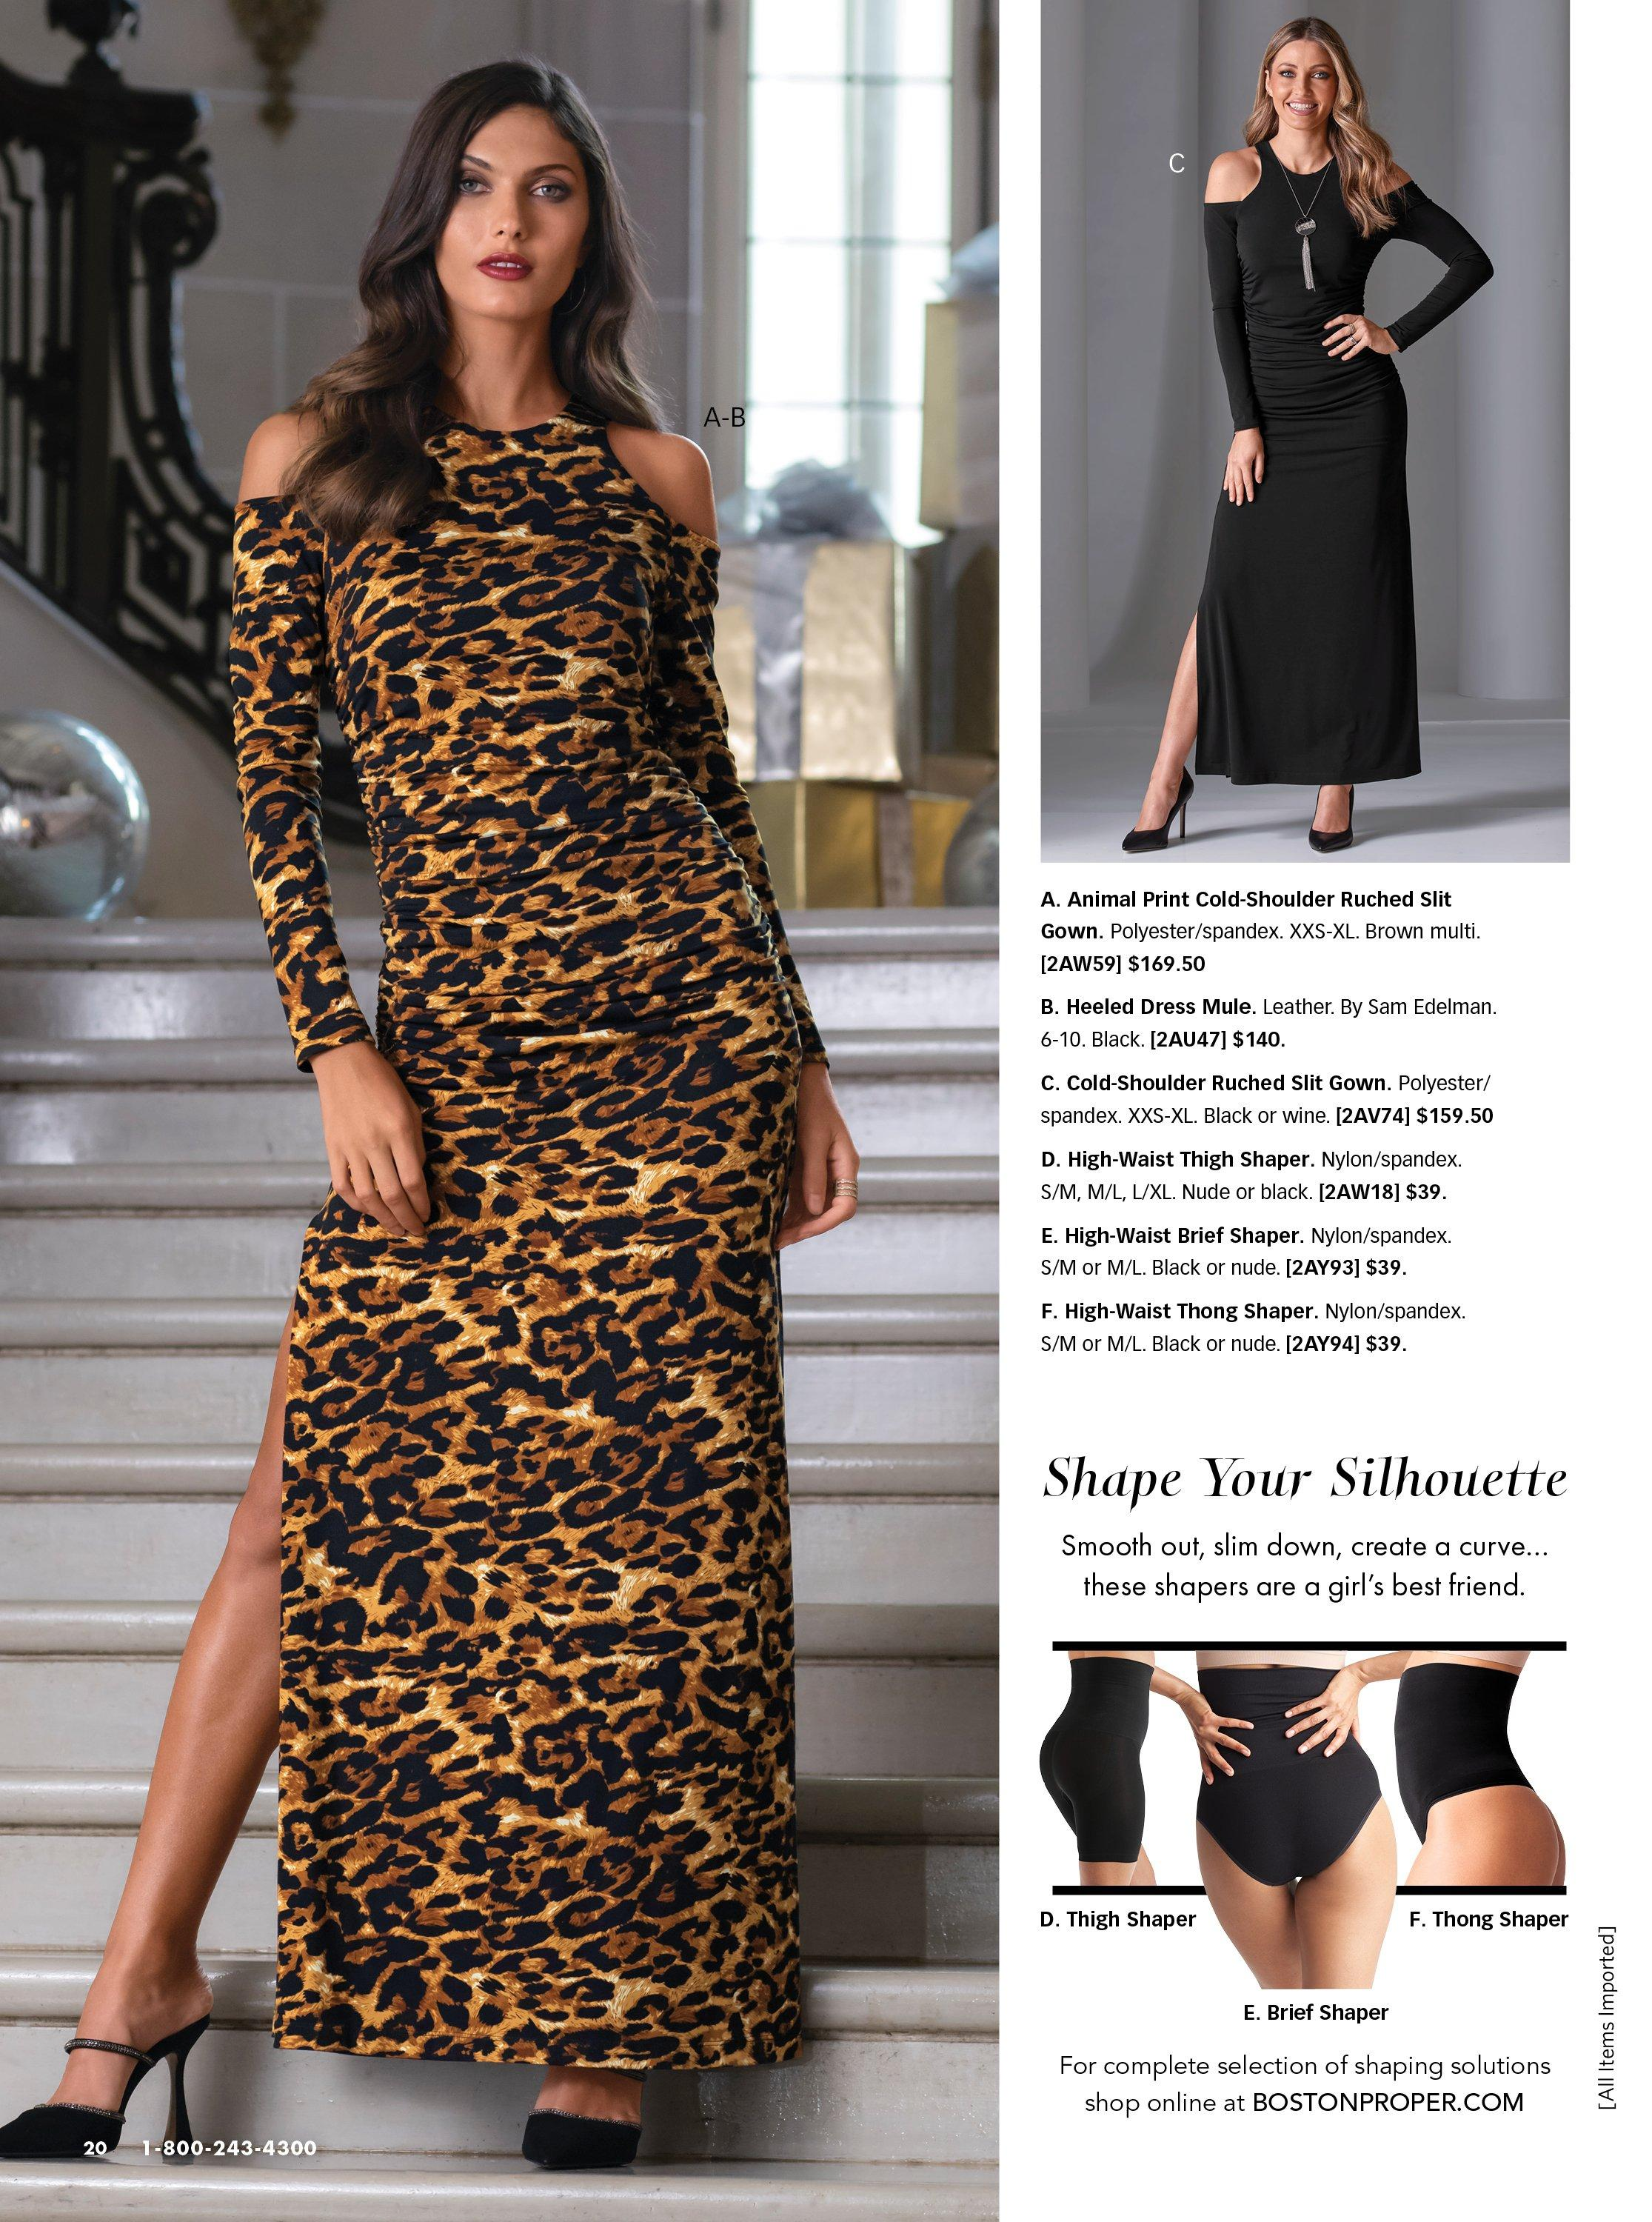 left model wearing a long-sleeve cold-shoulder leopard print gown and black heeled mule shoes. top right model wearing a black long-sleeve cold-shoulder gown and black heels. bottom right panel shows three options of shapewear in black.